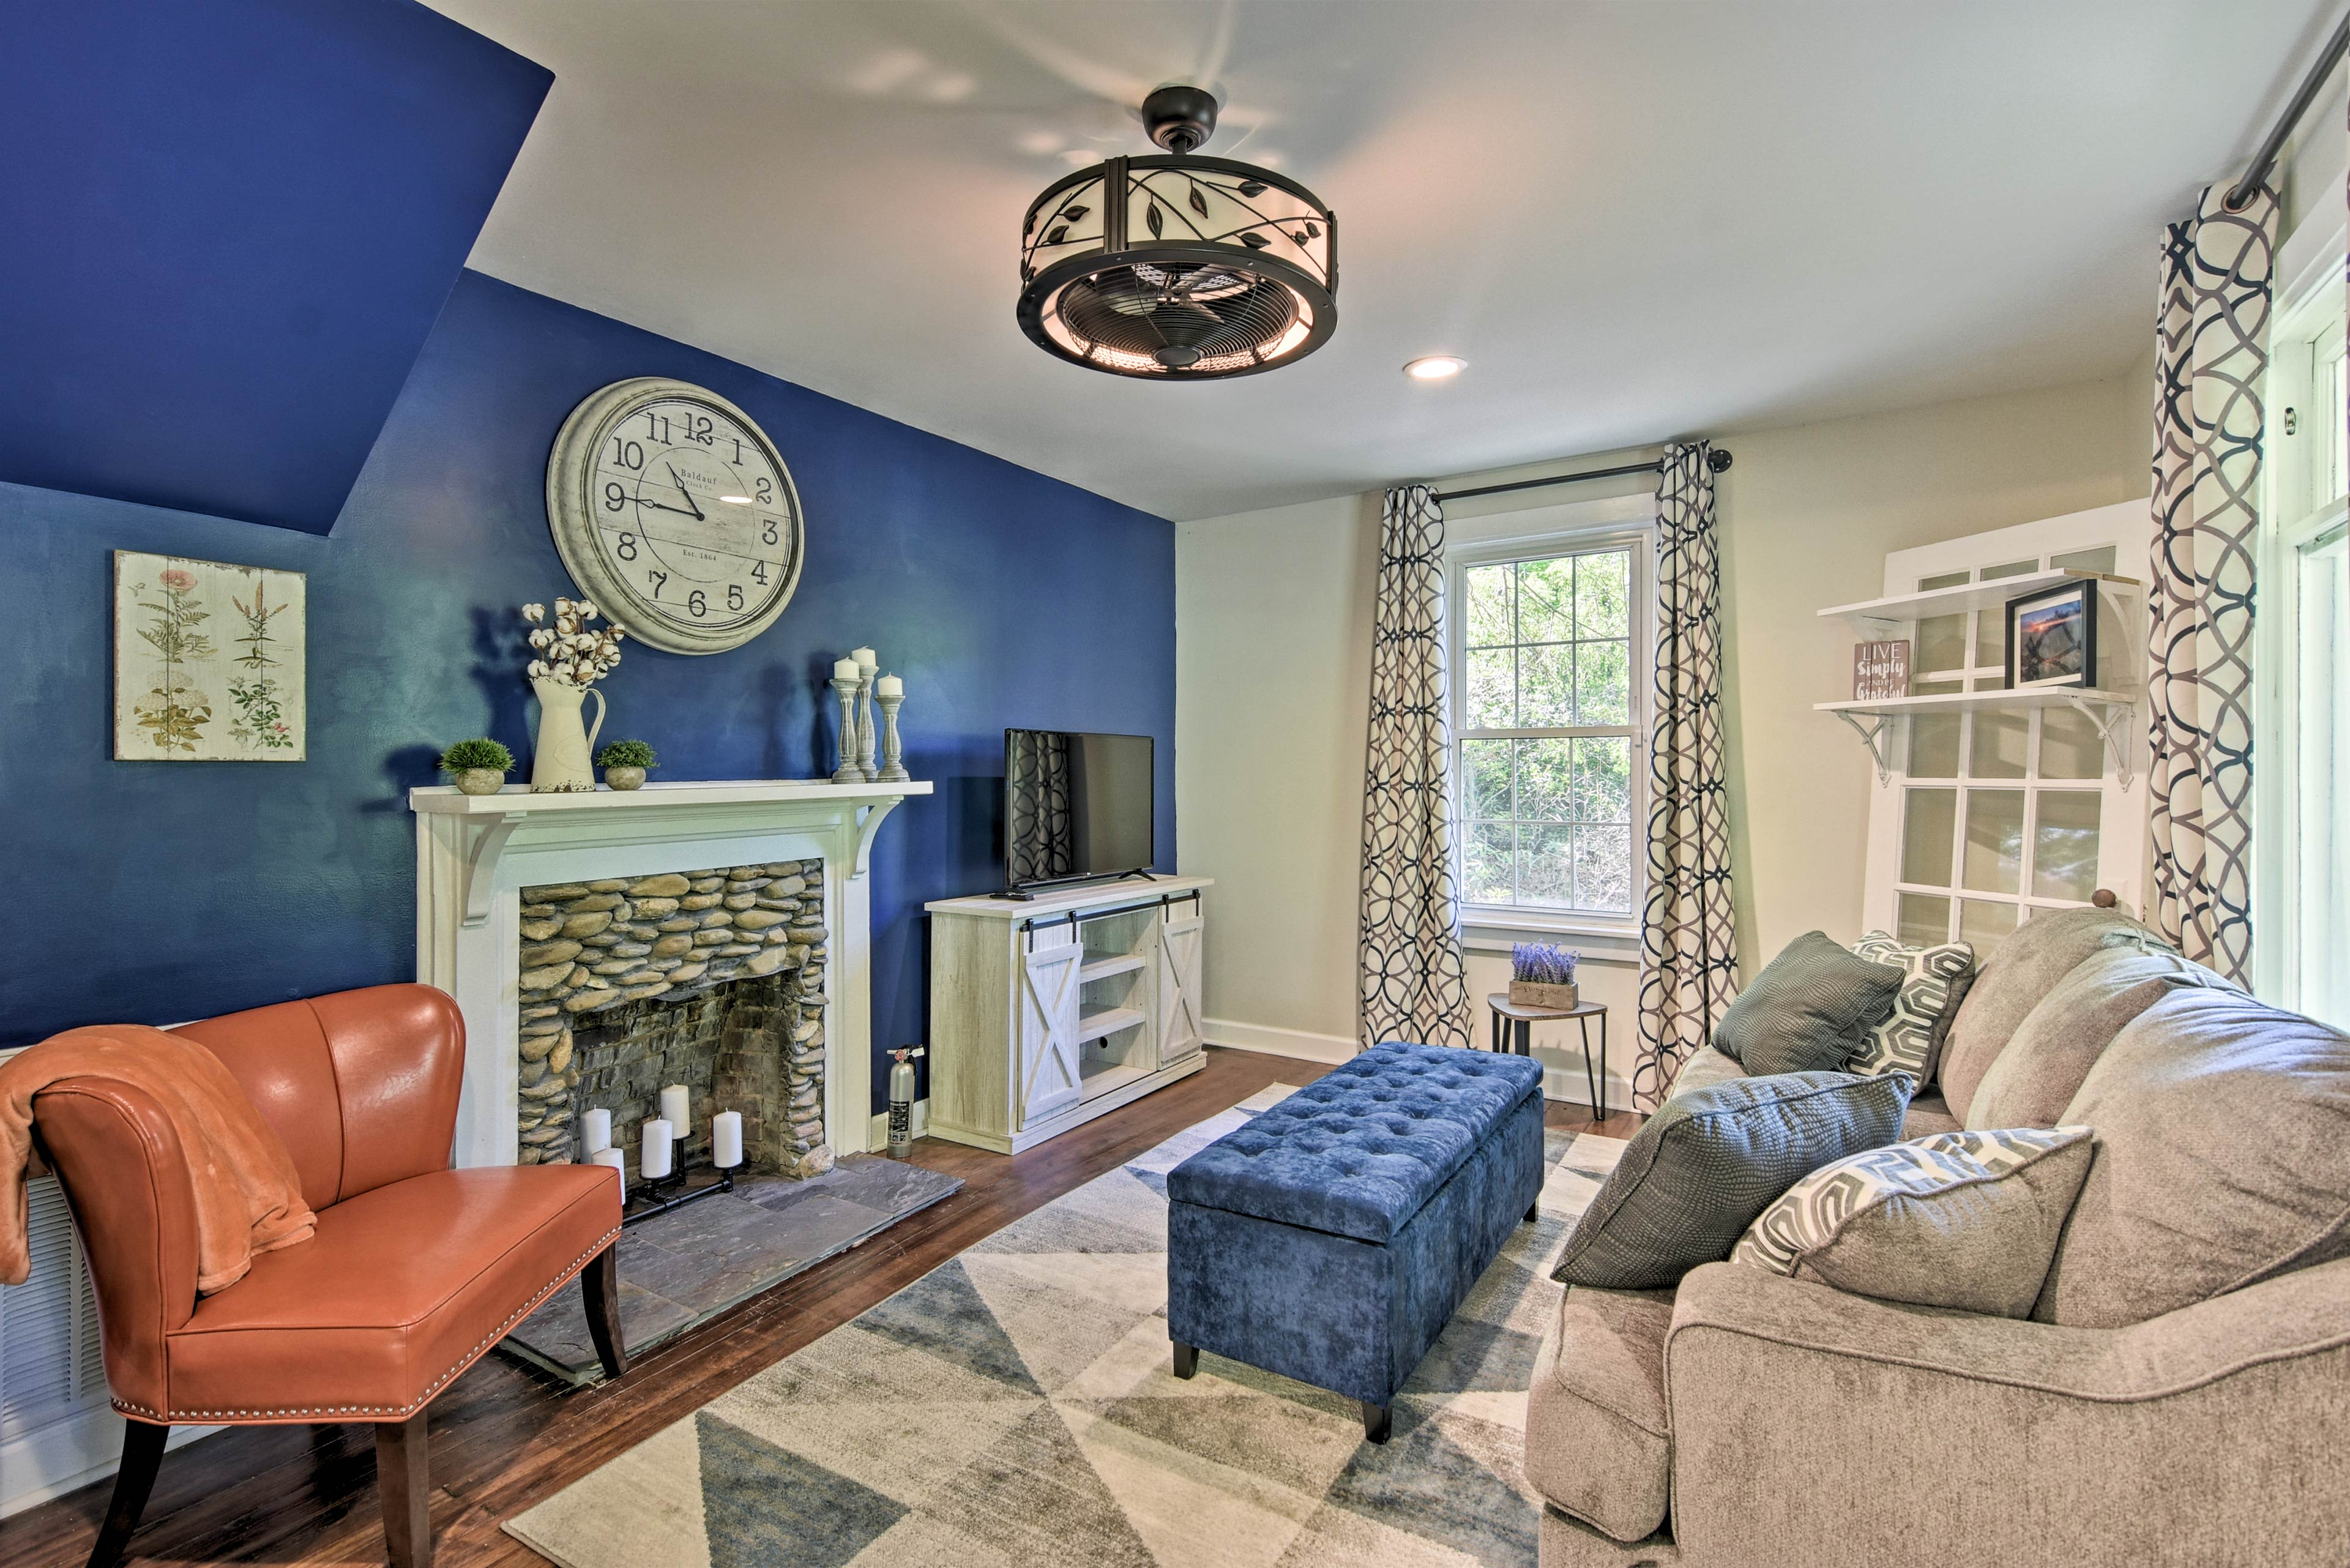 Make yourself comfortable in the inviting living room of this vacation rental.